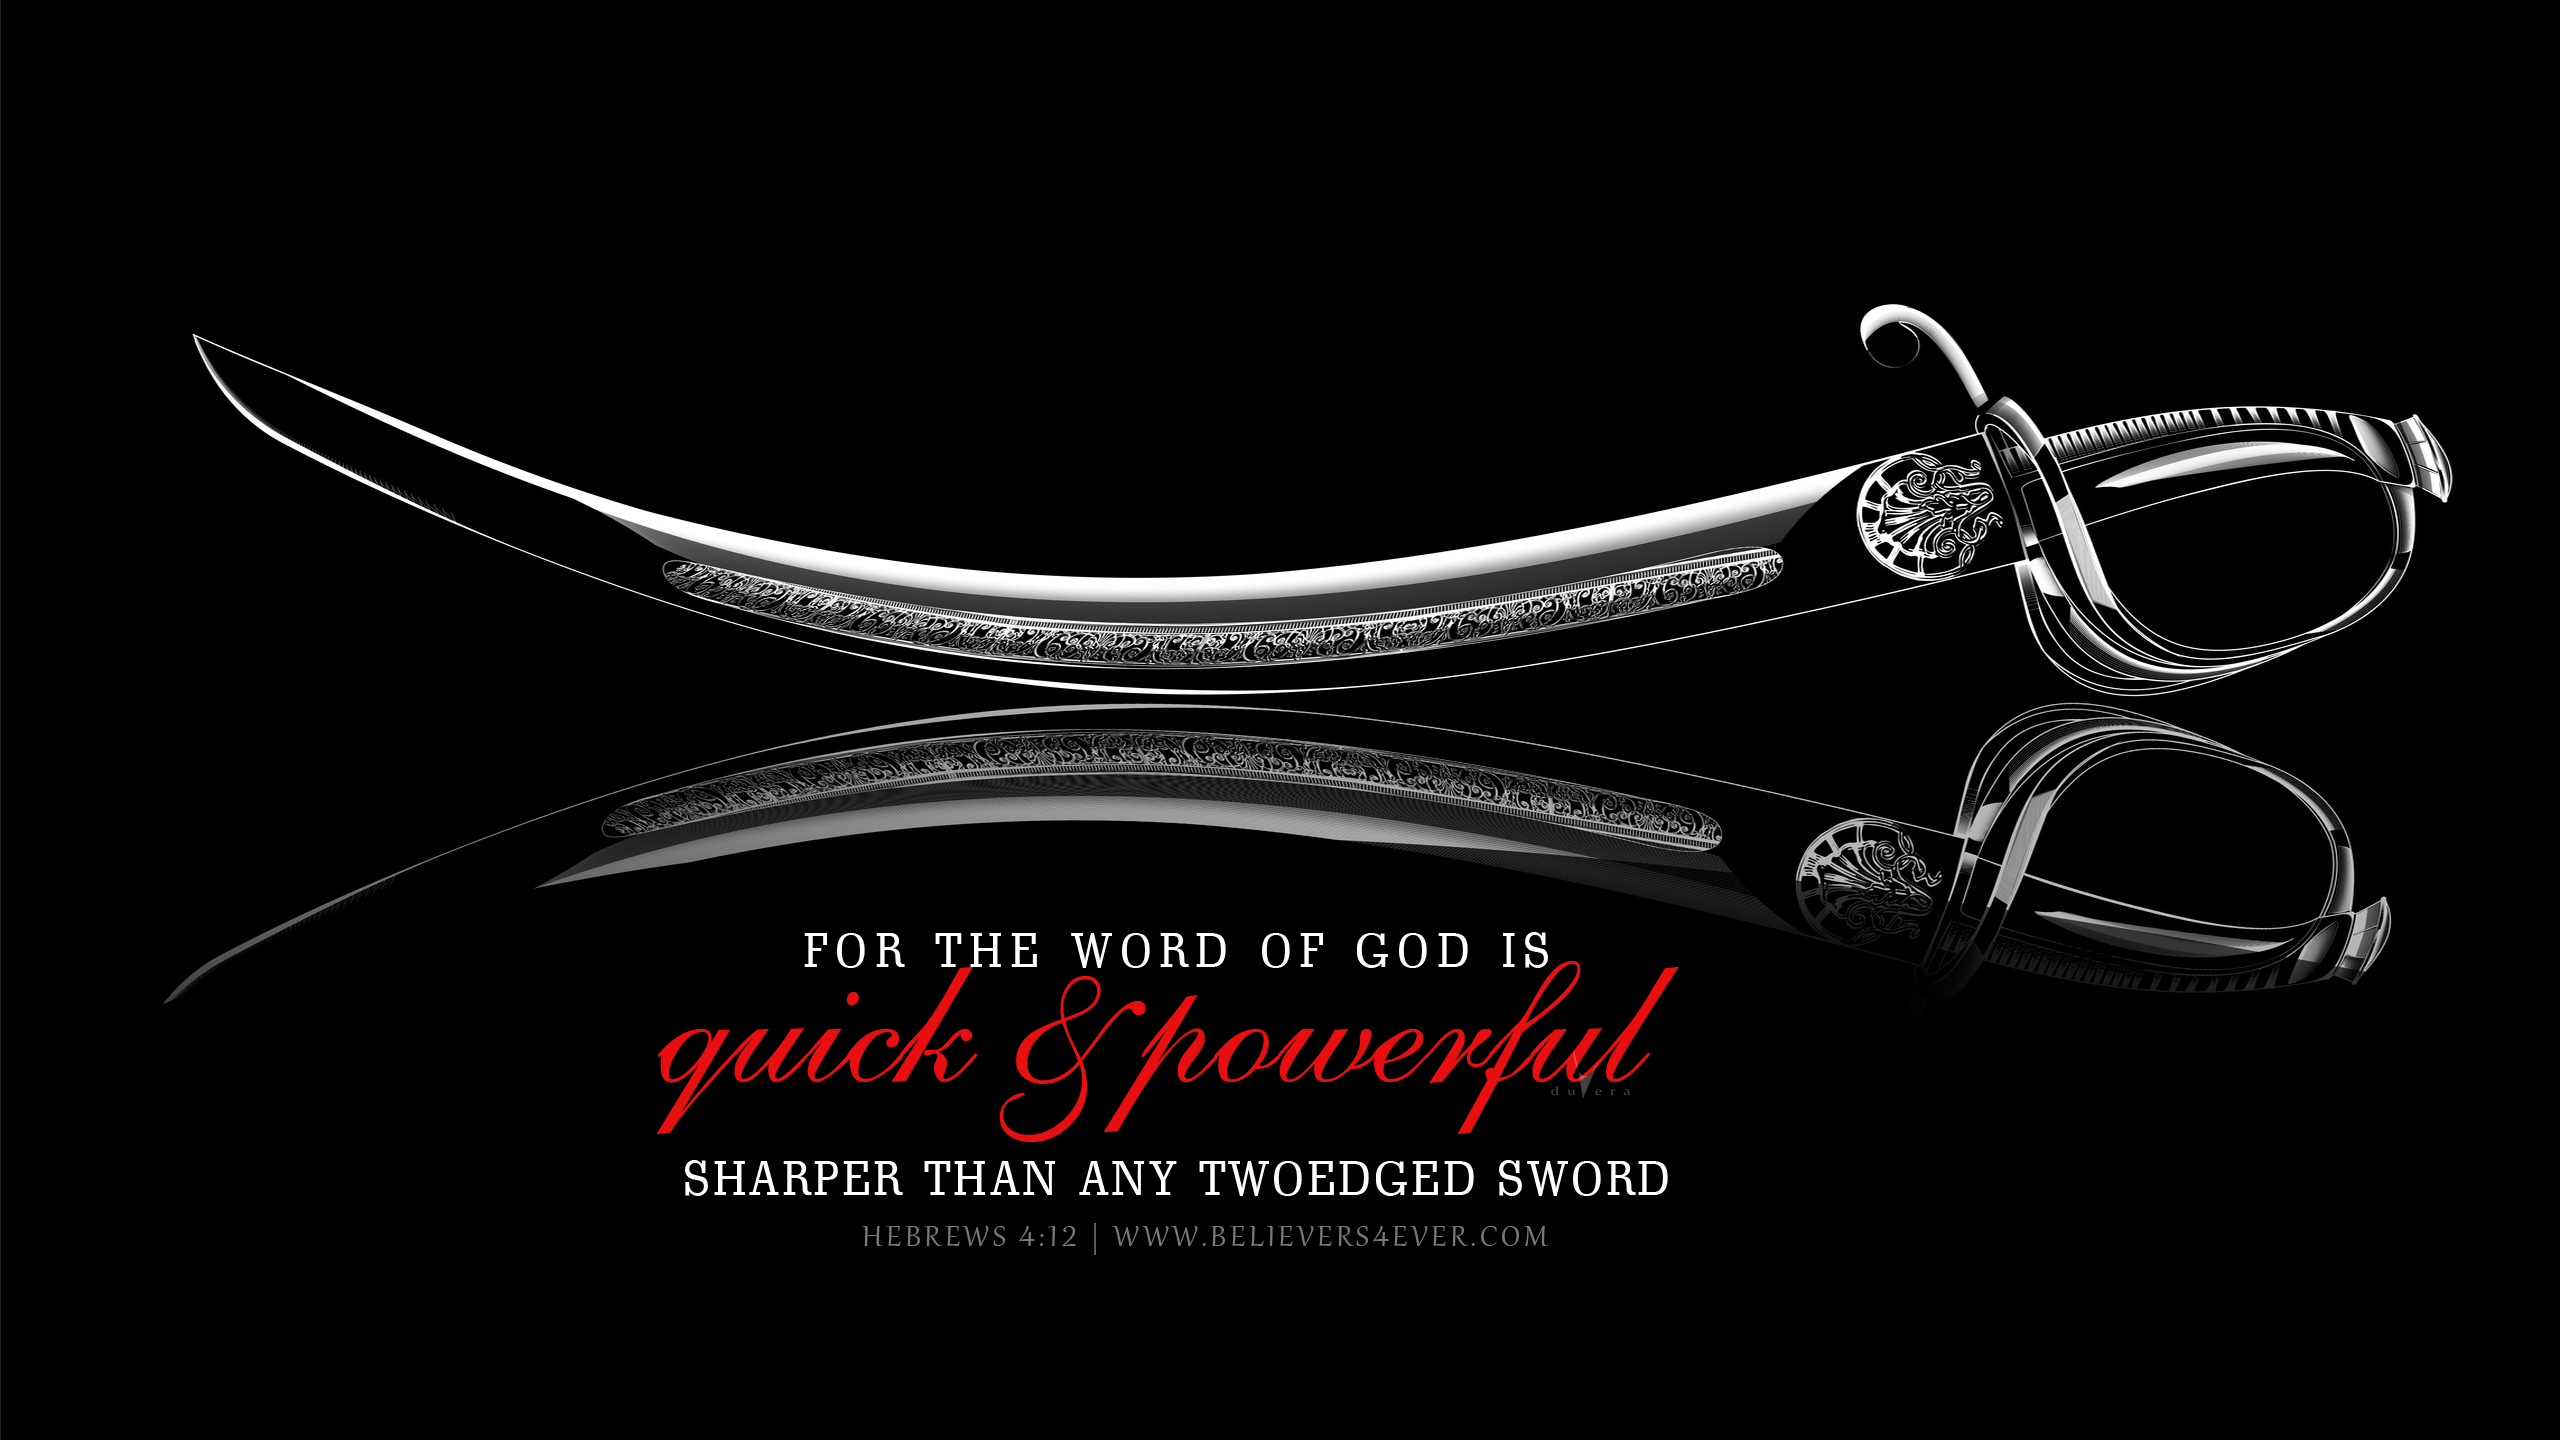 For the word of God is quick, and powerful, and sharper than any twoedged sword Christian desktop wallpaper Hebrews 4:12